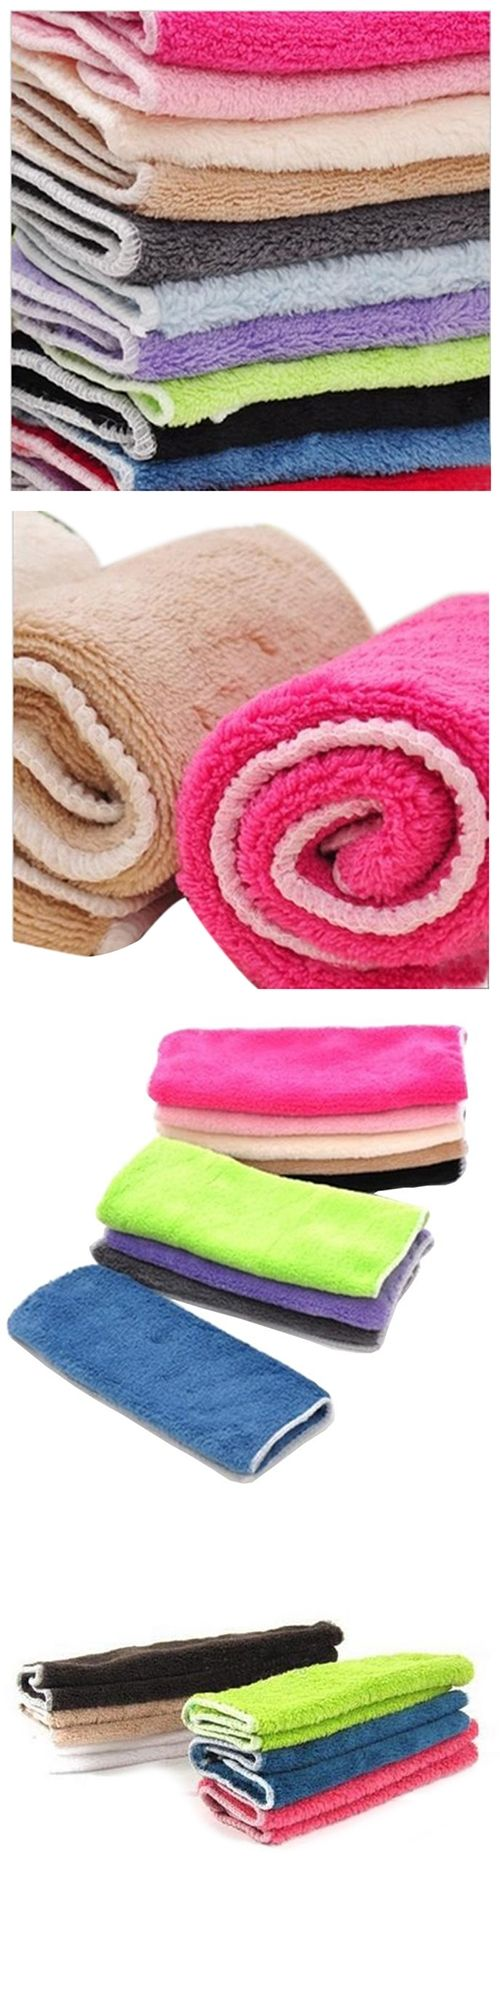 NOCM Hot Anti-grease Cloth Bamboo Fiber Washing Towel Magic Kitchen Cleaning Wiping Rags